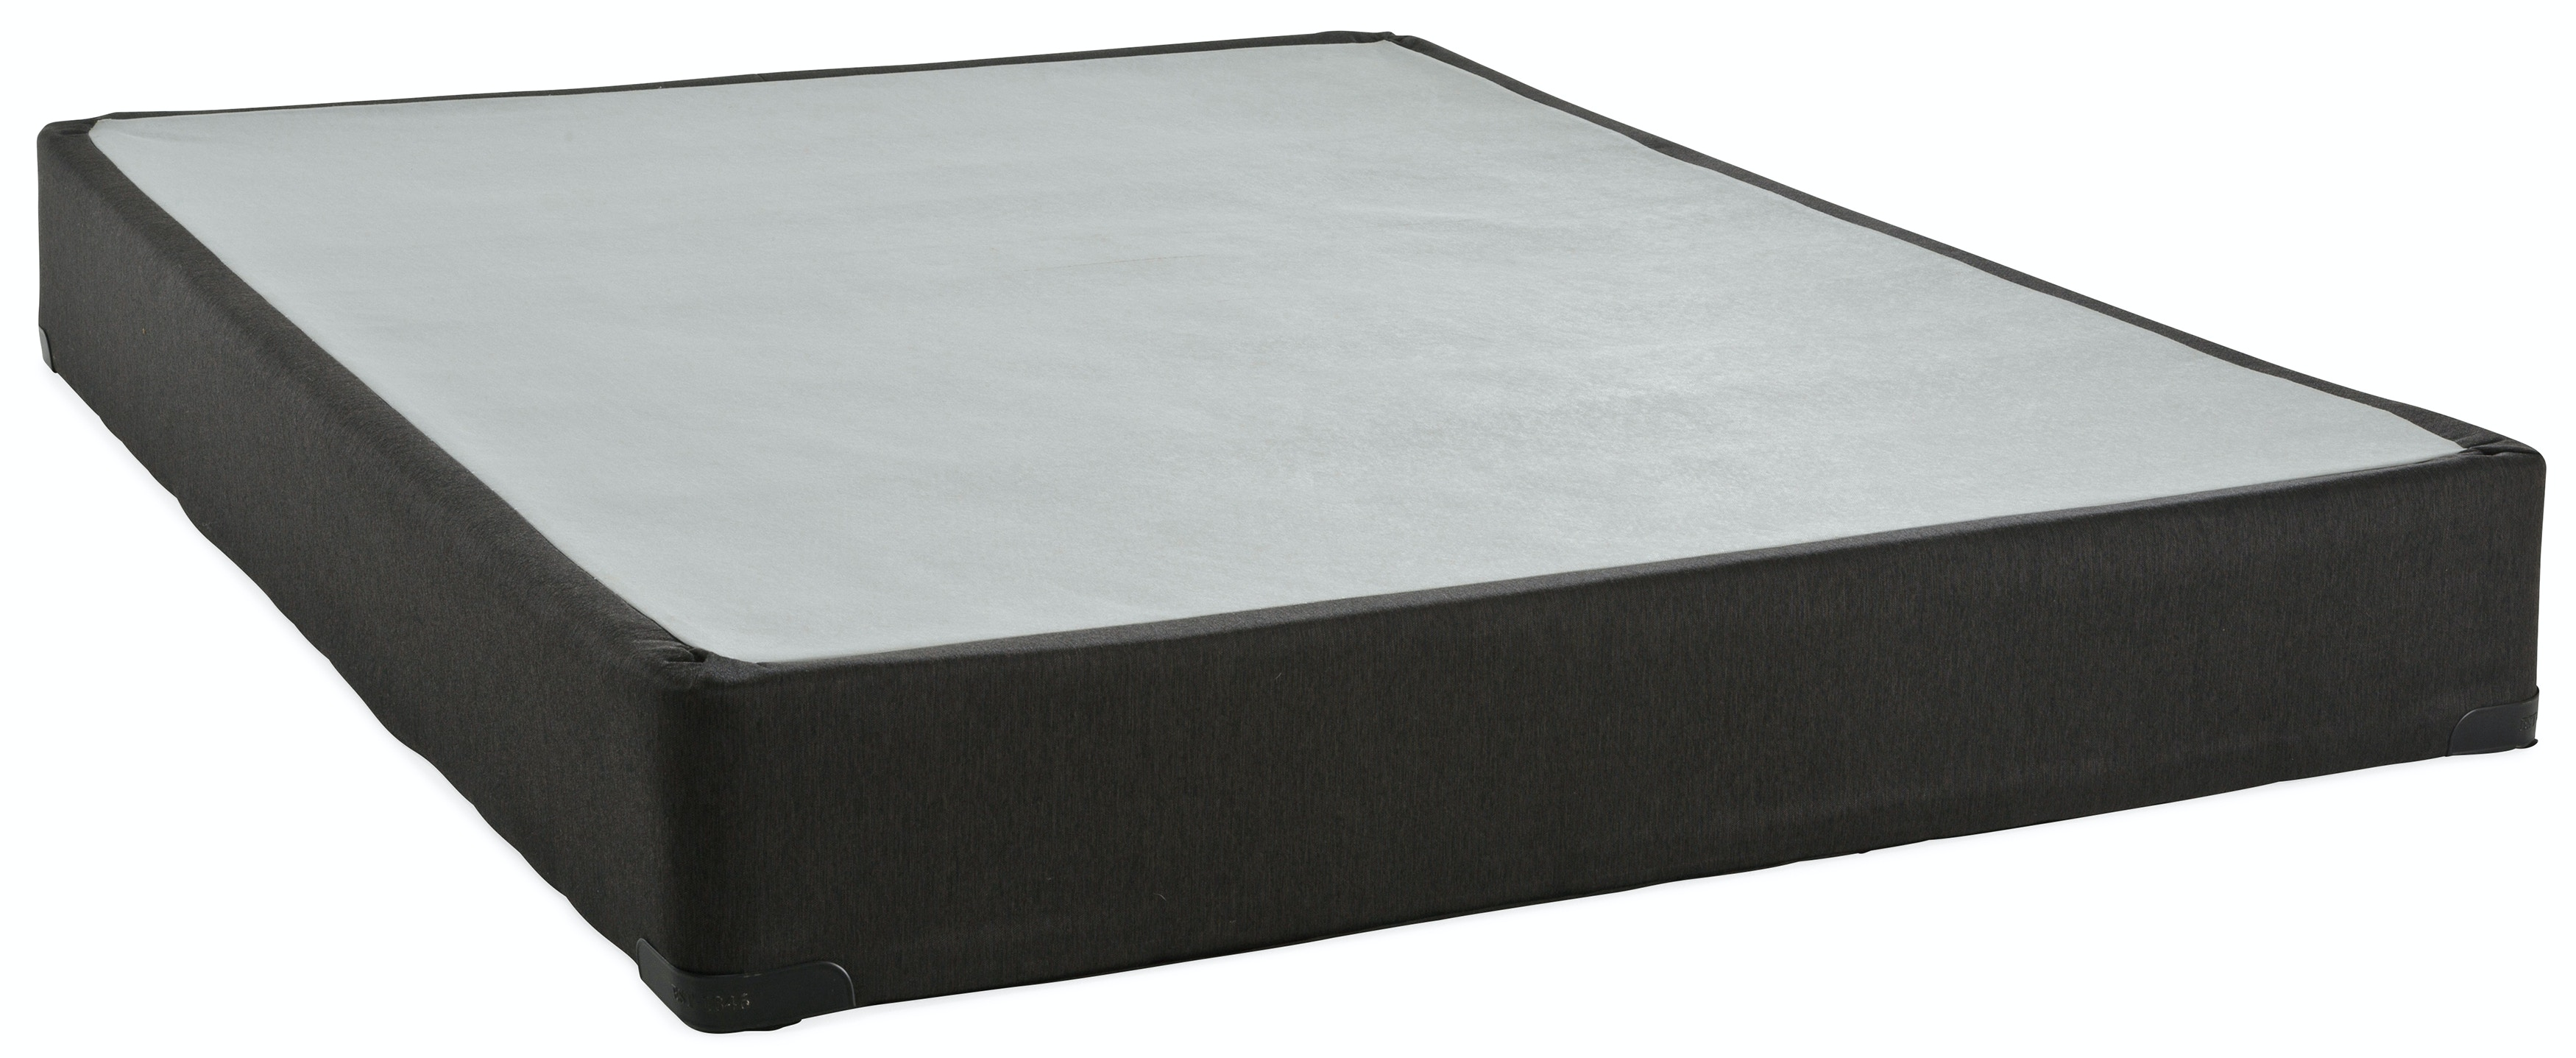 Stearns and foster logo Queen Stearns Foster Regular Profile Box Spring Full St465426 Complaints Board Mattresses Stearns Foster Regular Profile Box Spring Full